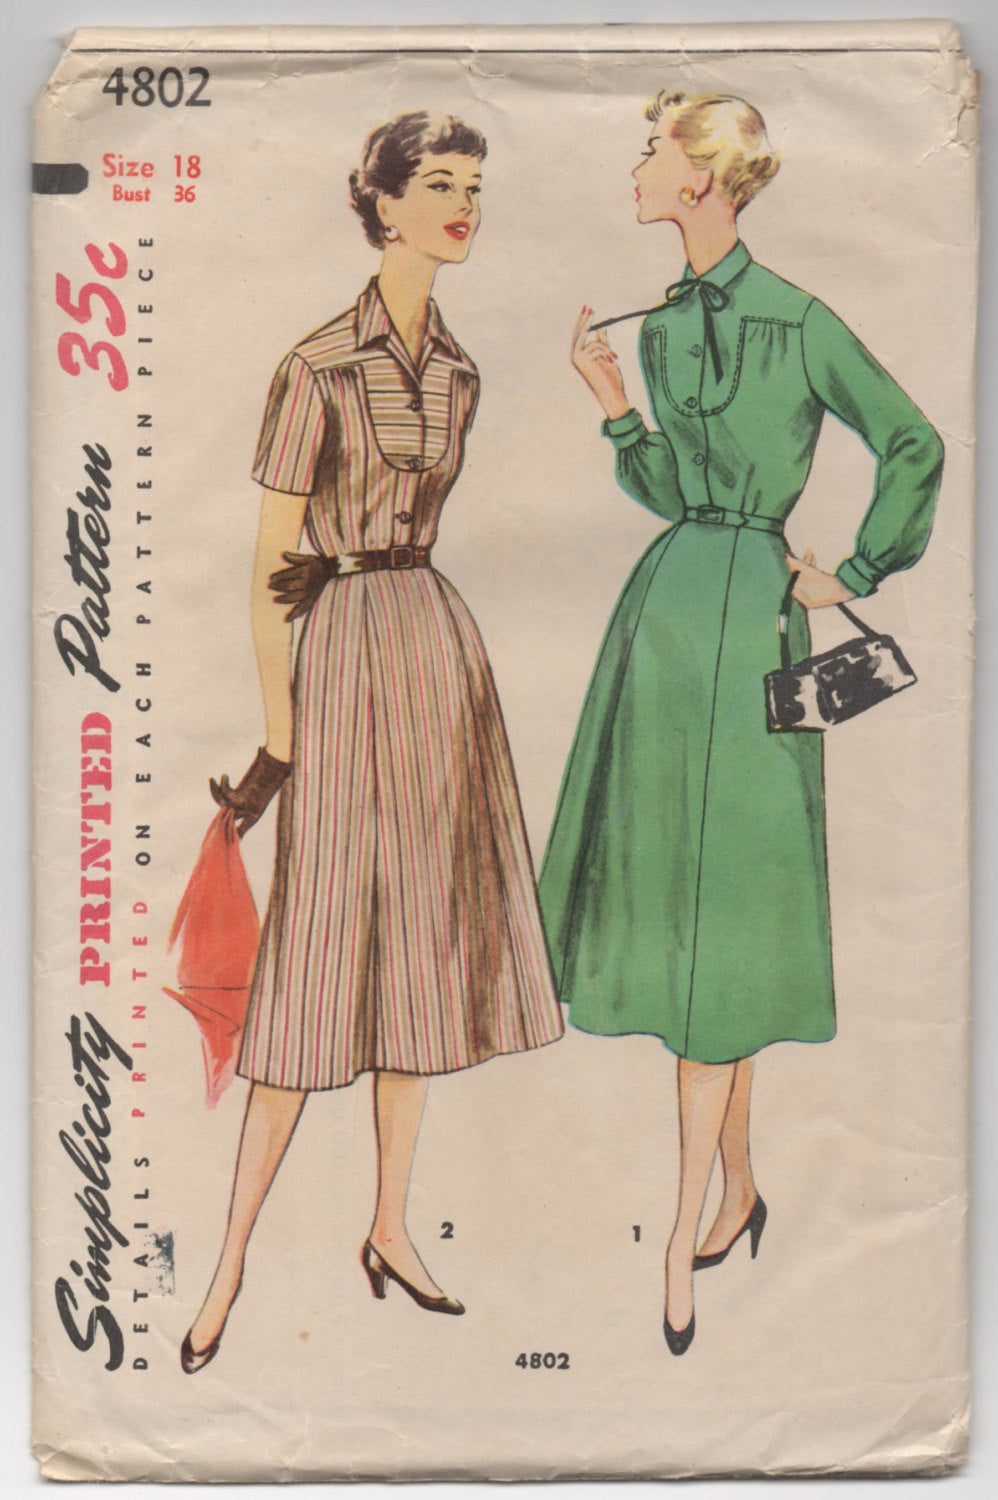 1950's Simplicity Short or Long Sleeve Button-Up Dress Pattern - Bust 36